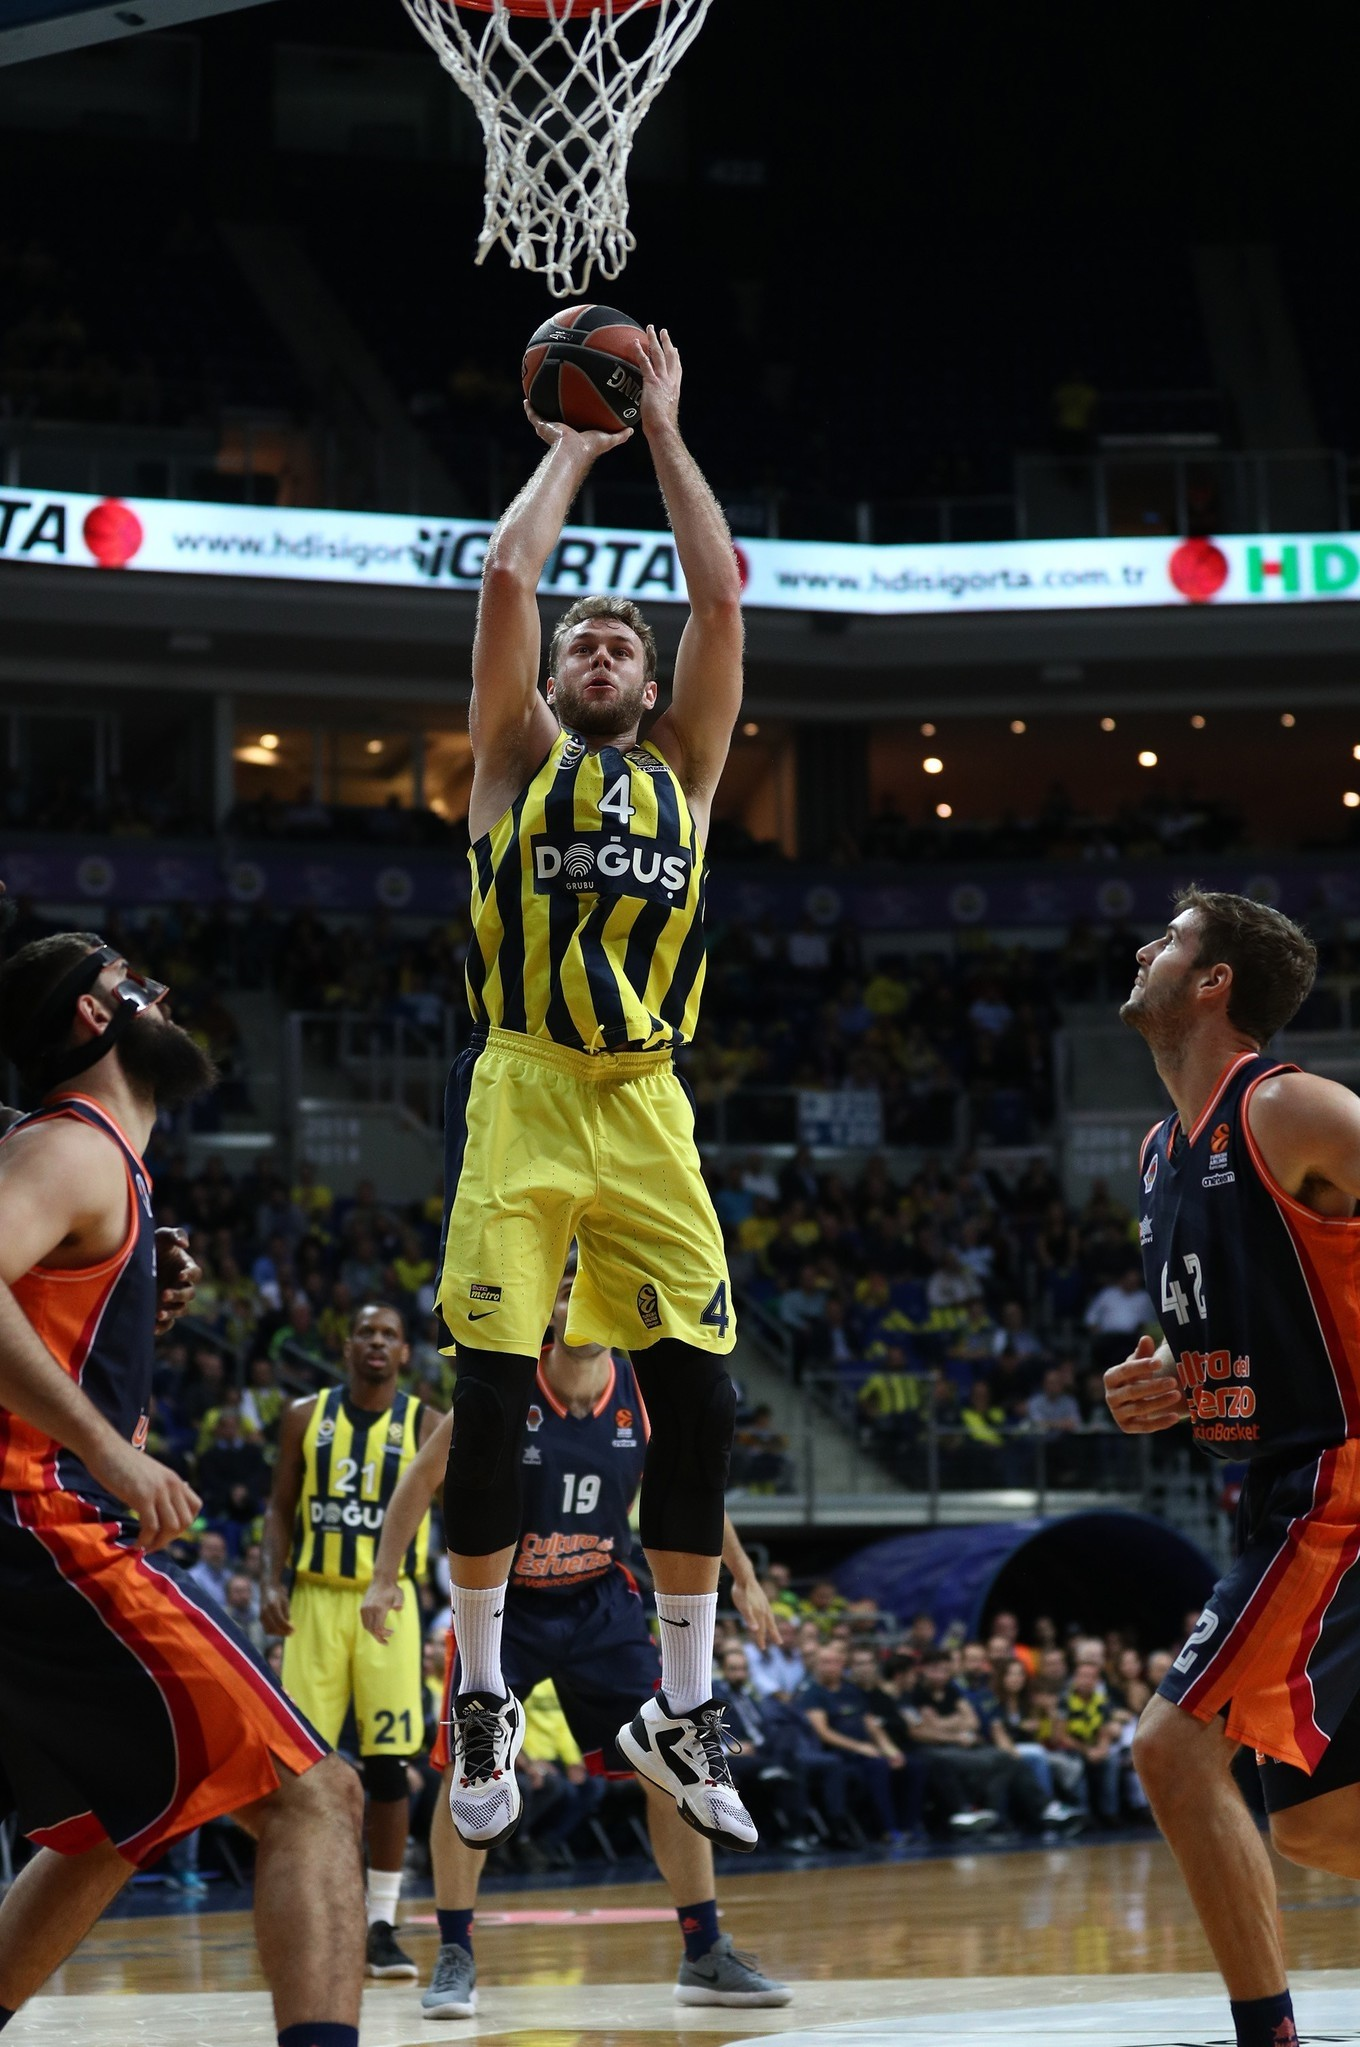 The game will be a homecoming of sorts for All-EuroLeague forward Nicolo Melli (below), who the past two seasons in Bamberg.